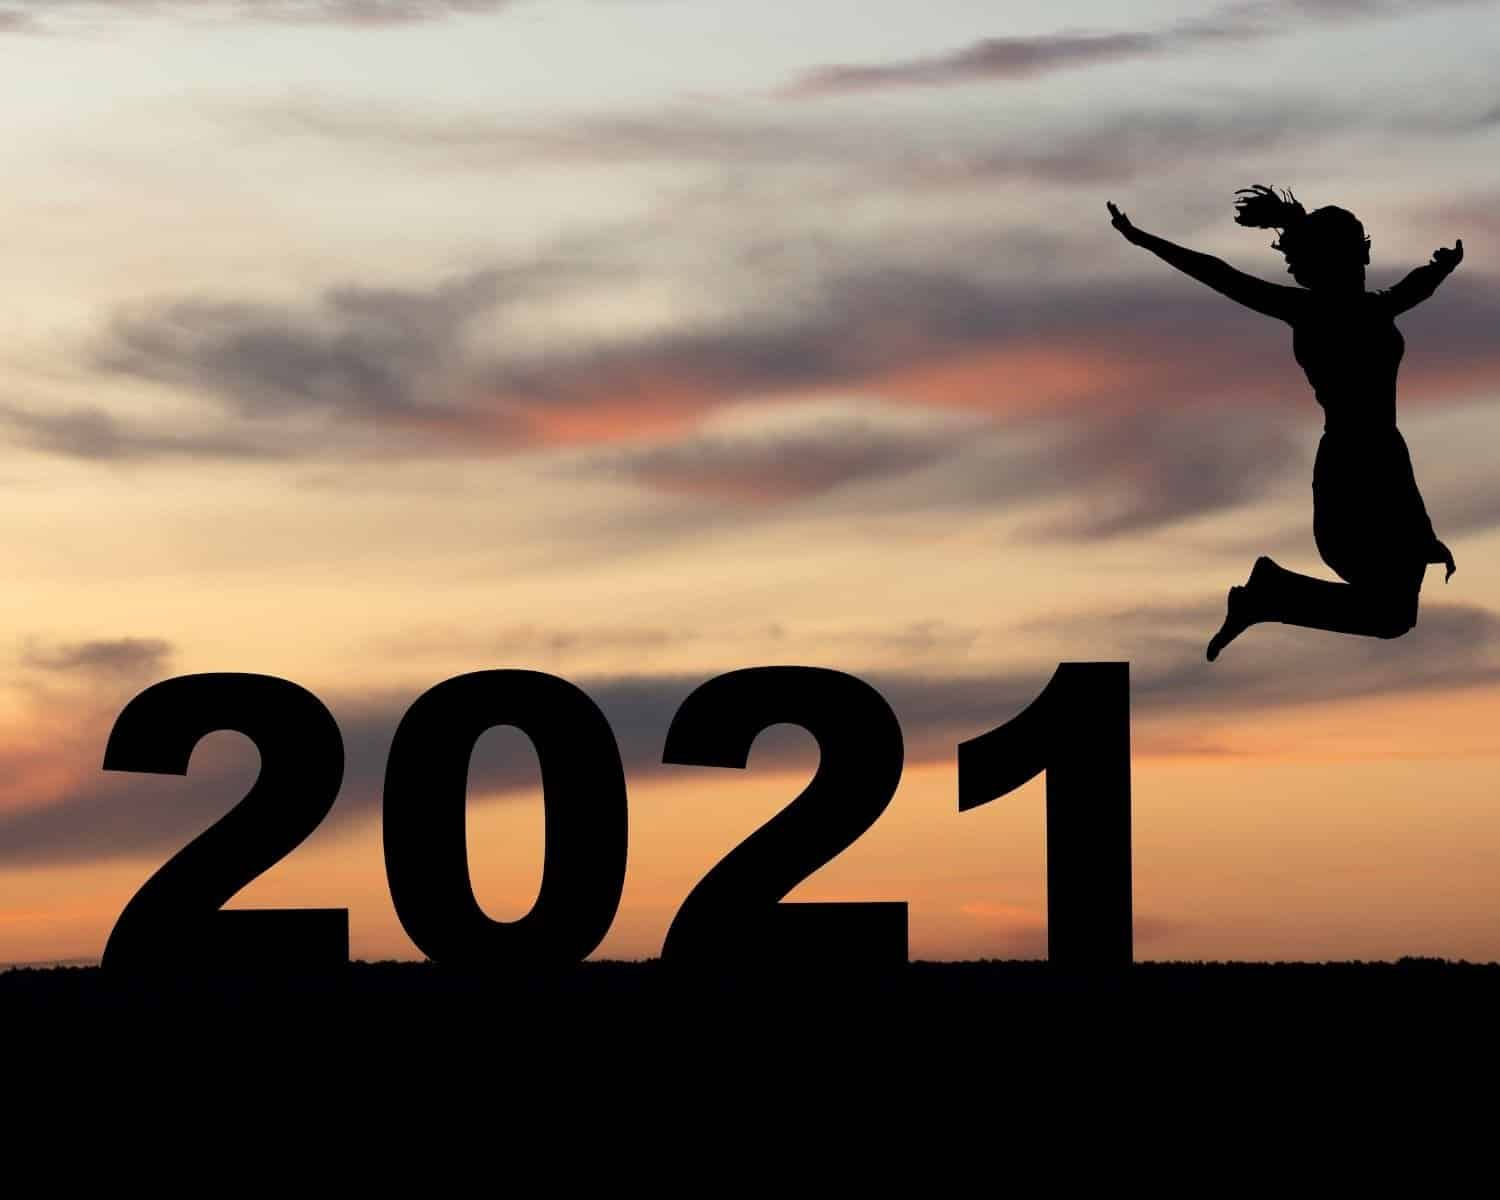 A woman jumps in the air in front of a 2021 sign